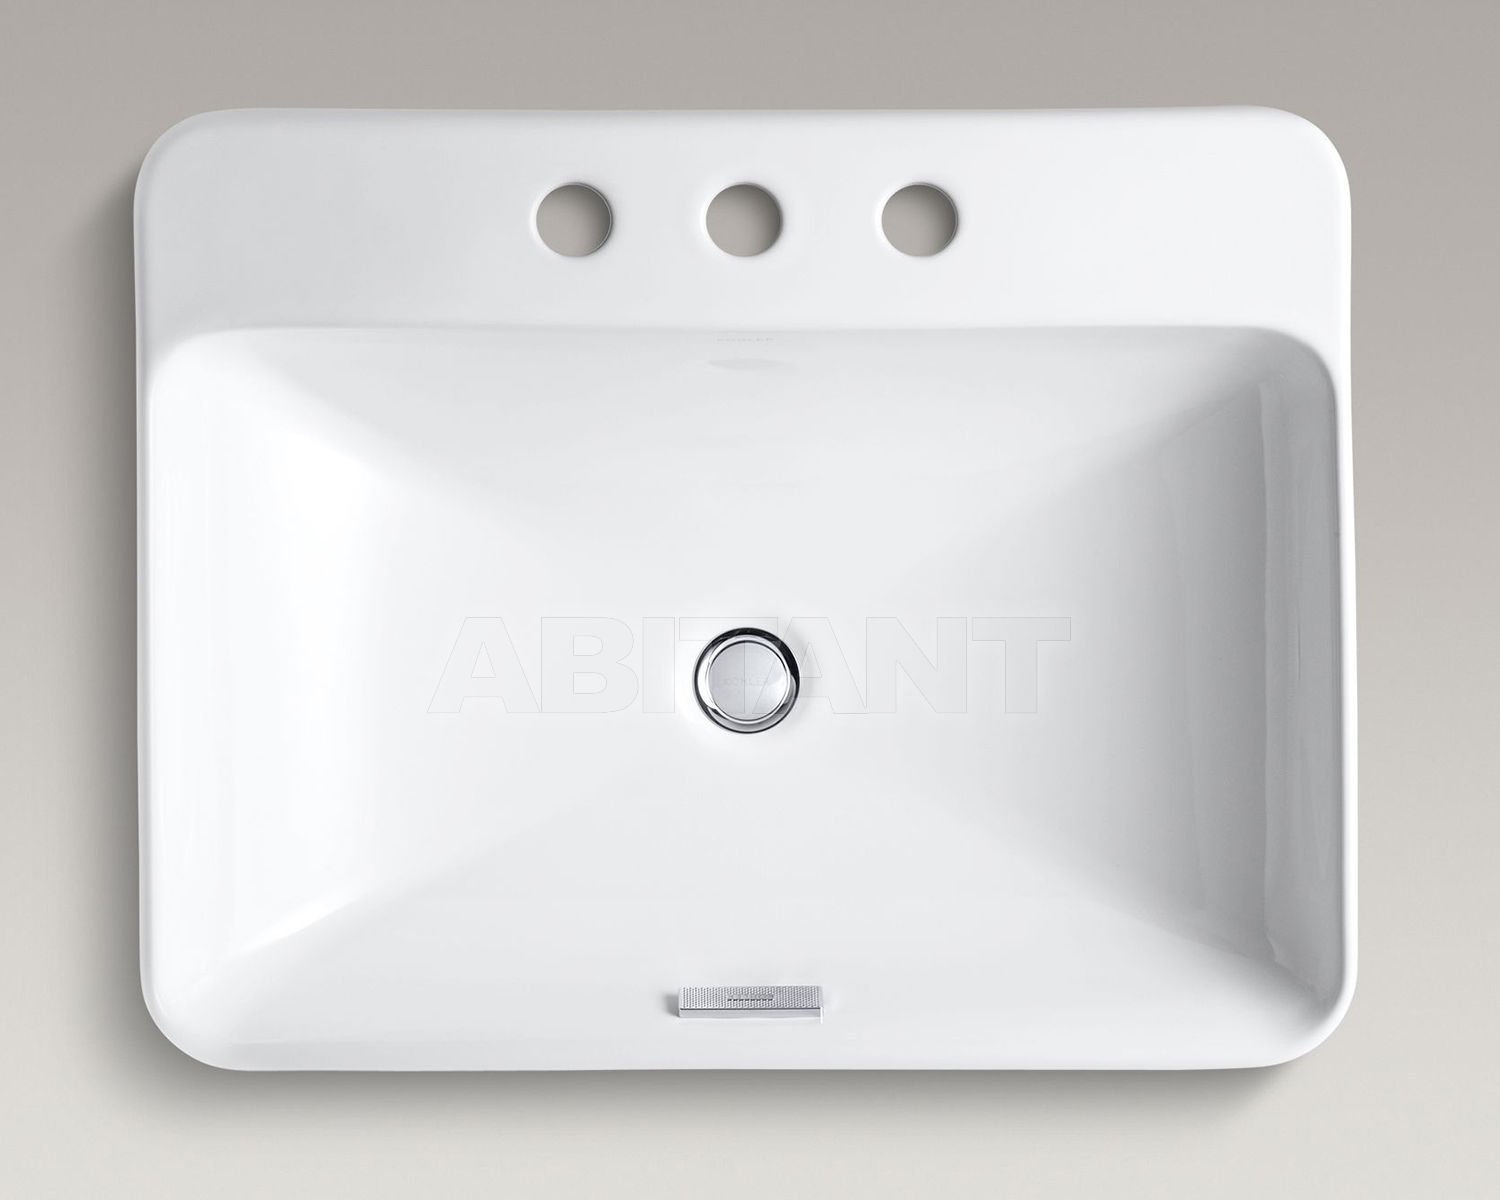 Раковина накладная Vox Rectangle белая Kohler K-2660-8-0 ...